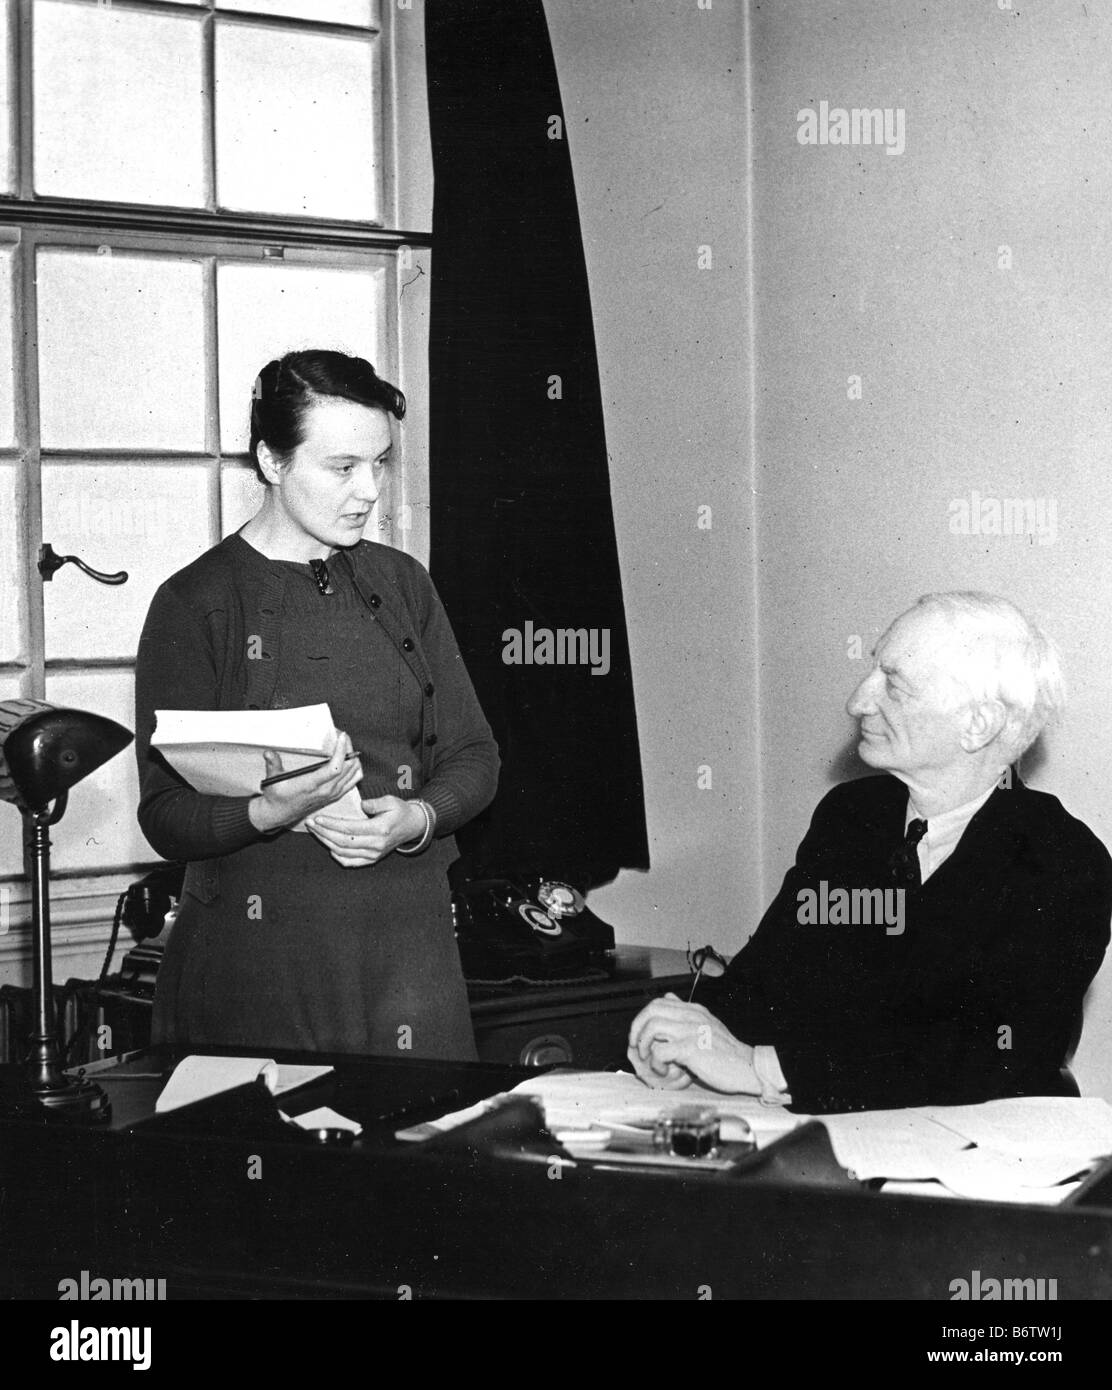 SIR WILLIAM BEVERIDGE British economist and social reformer in 1943 with his private secretary Elizabeth Chambers - Stock Image